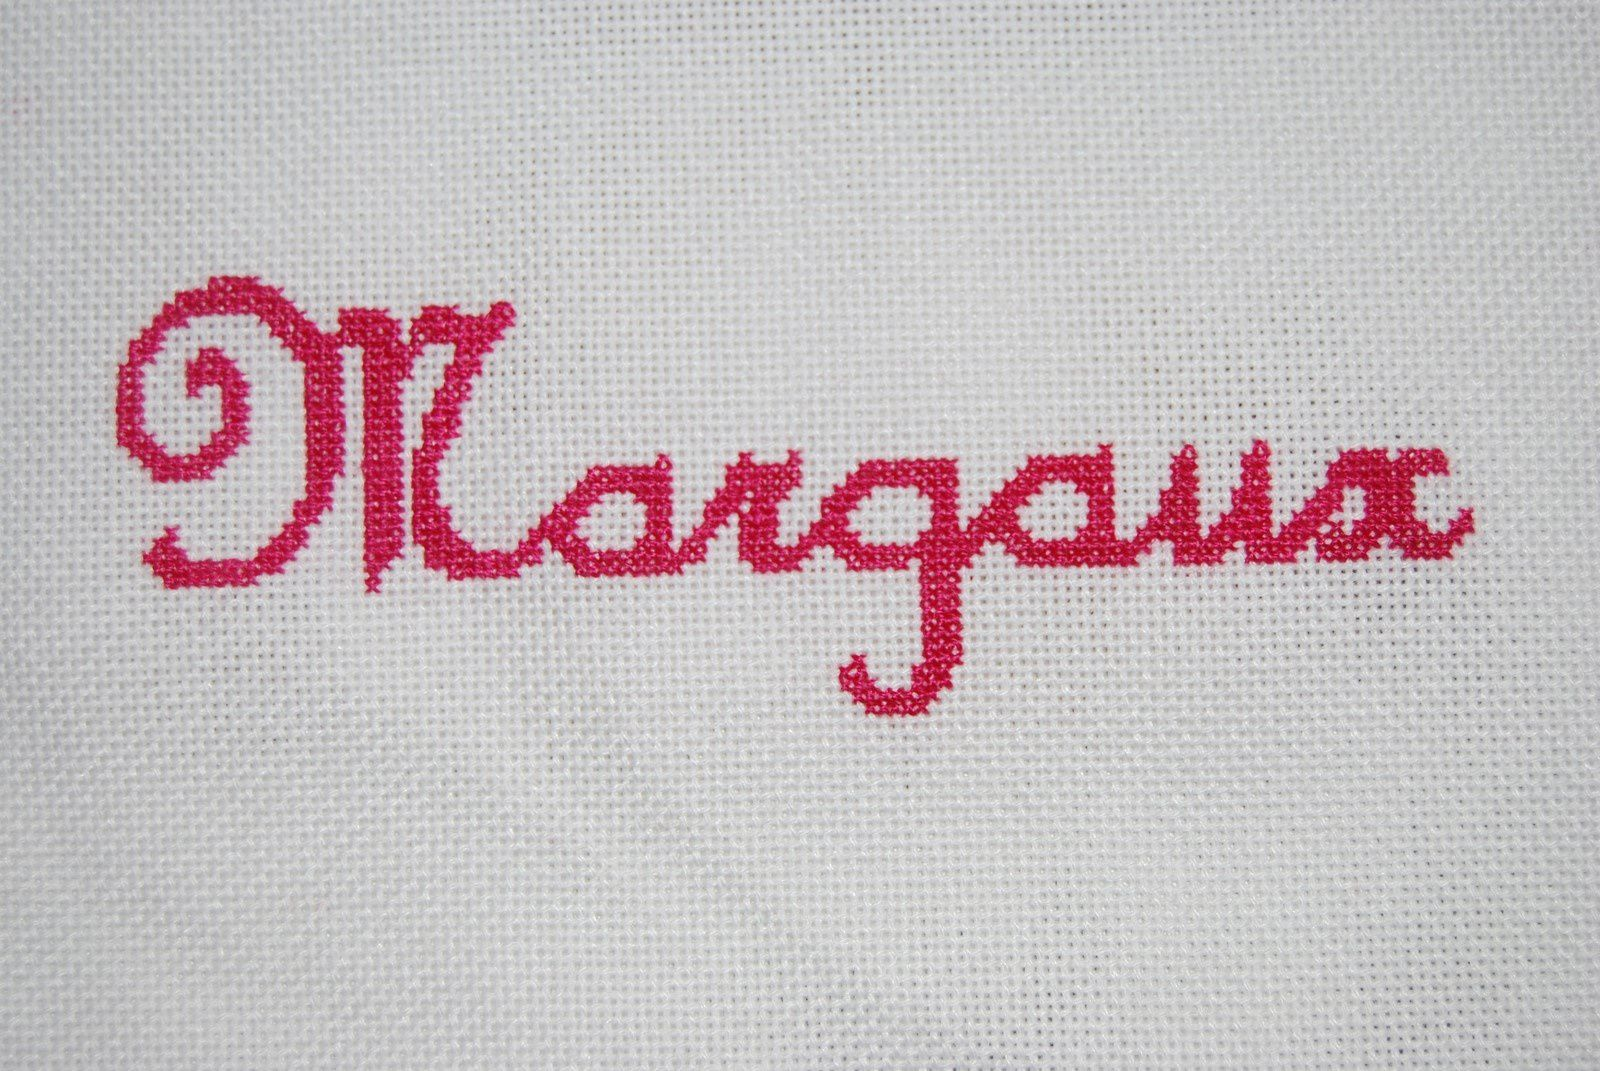 Range serviette #1 Suite